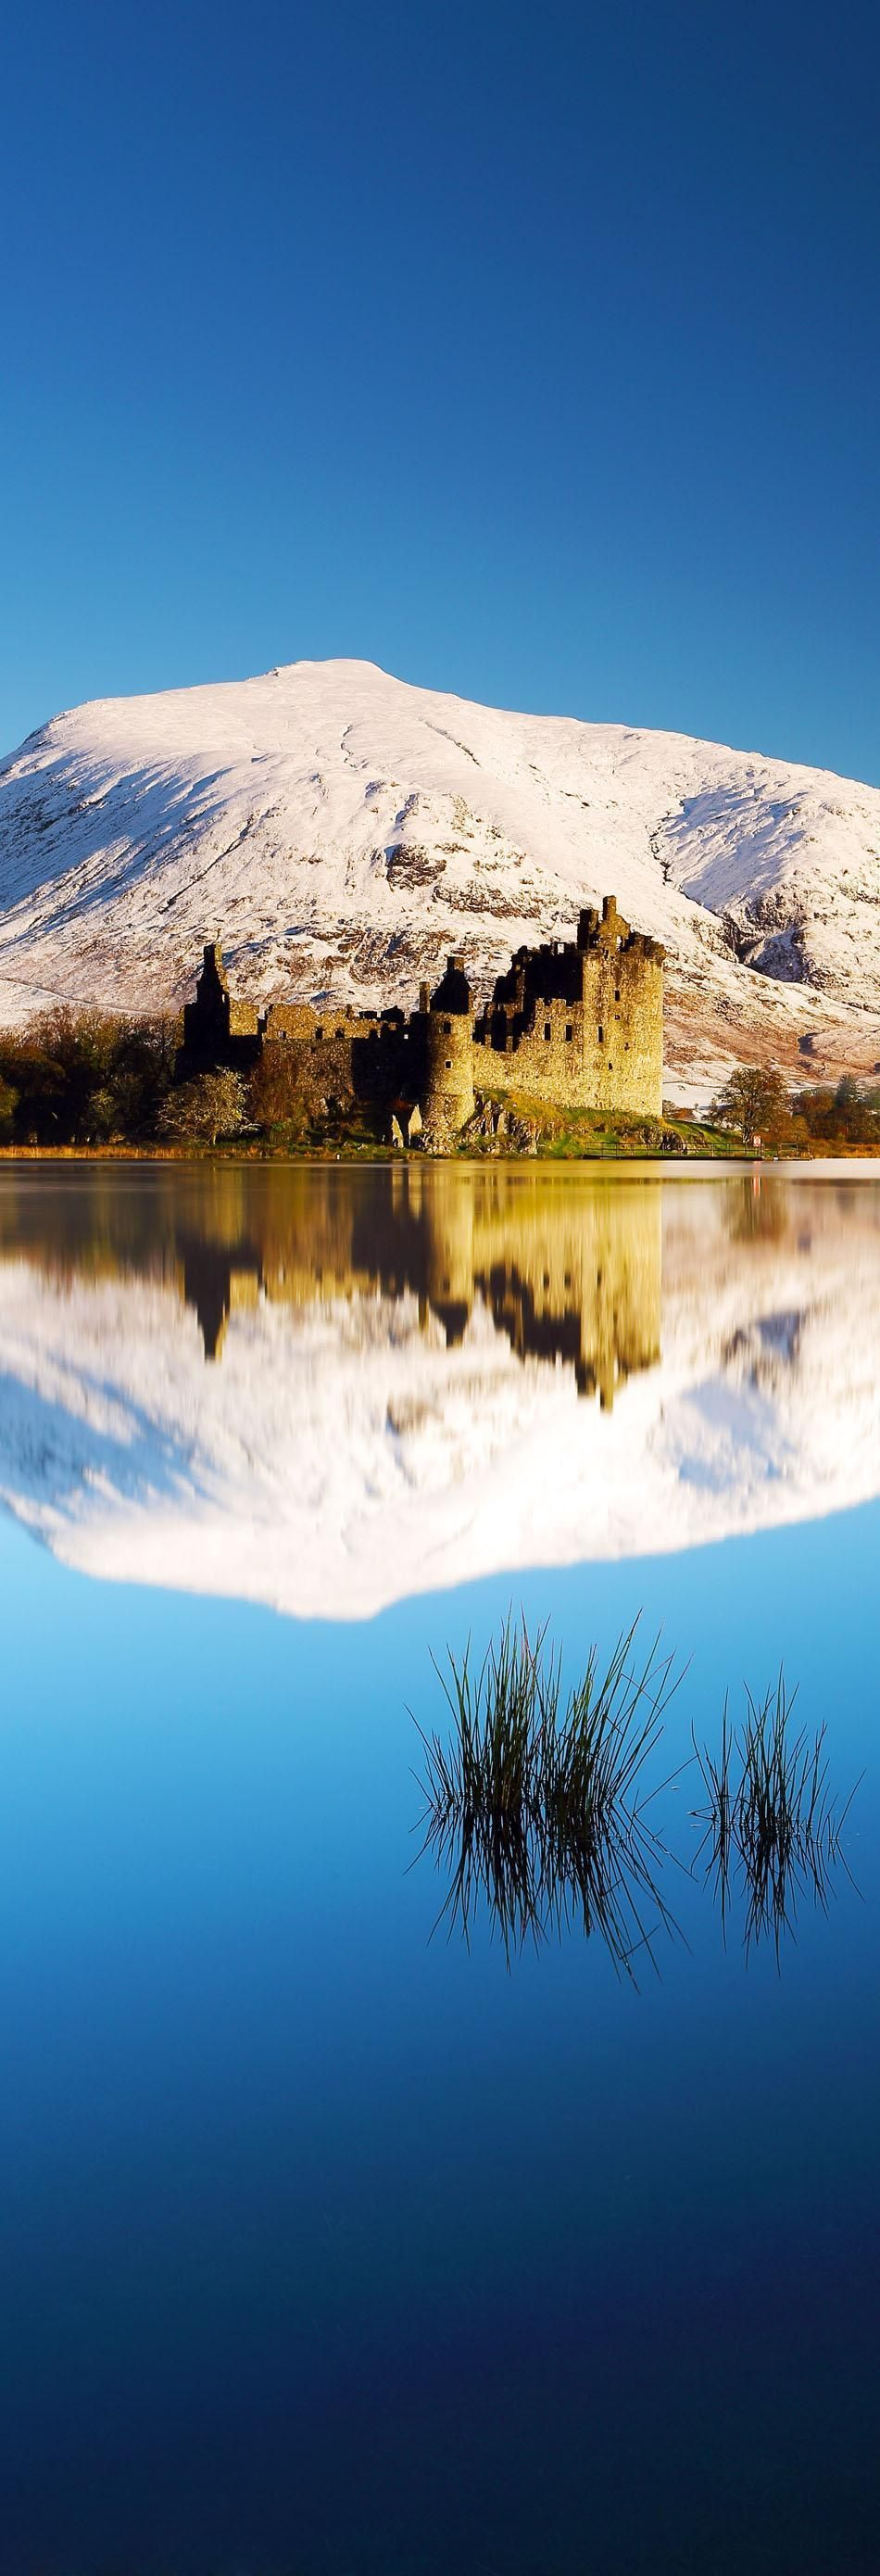 Kilchurn Castle and snow covered mountains reflecting off Loch Awe on a beautiful crisp morning. Dalmally, Scotland.